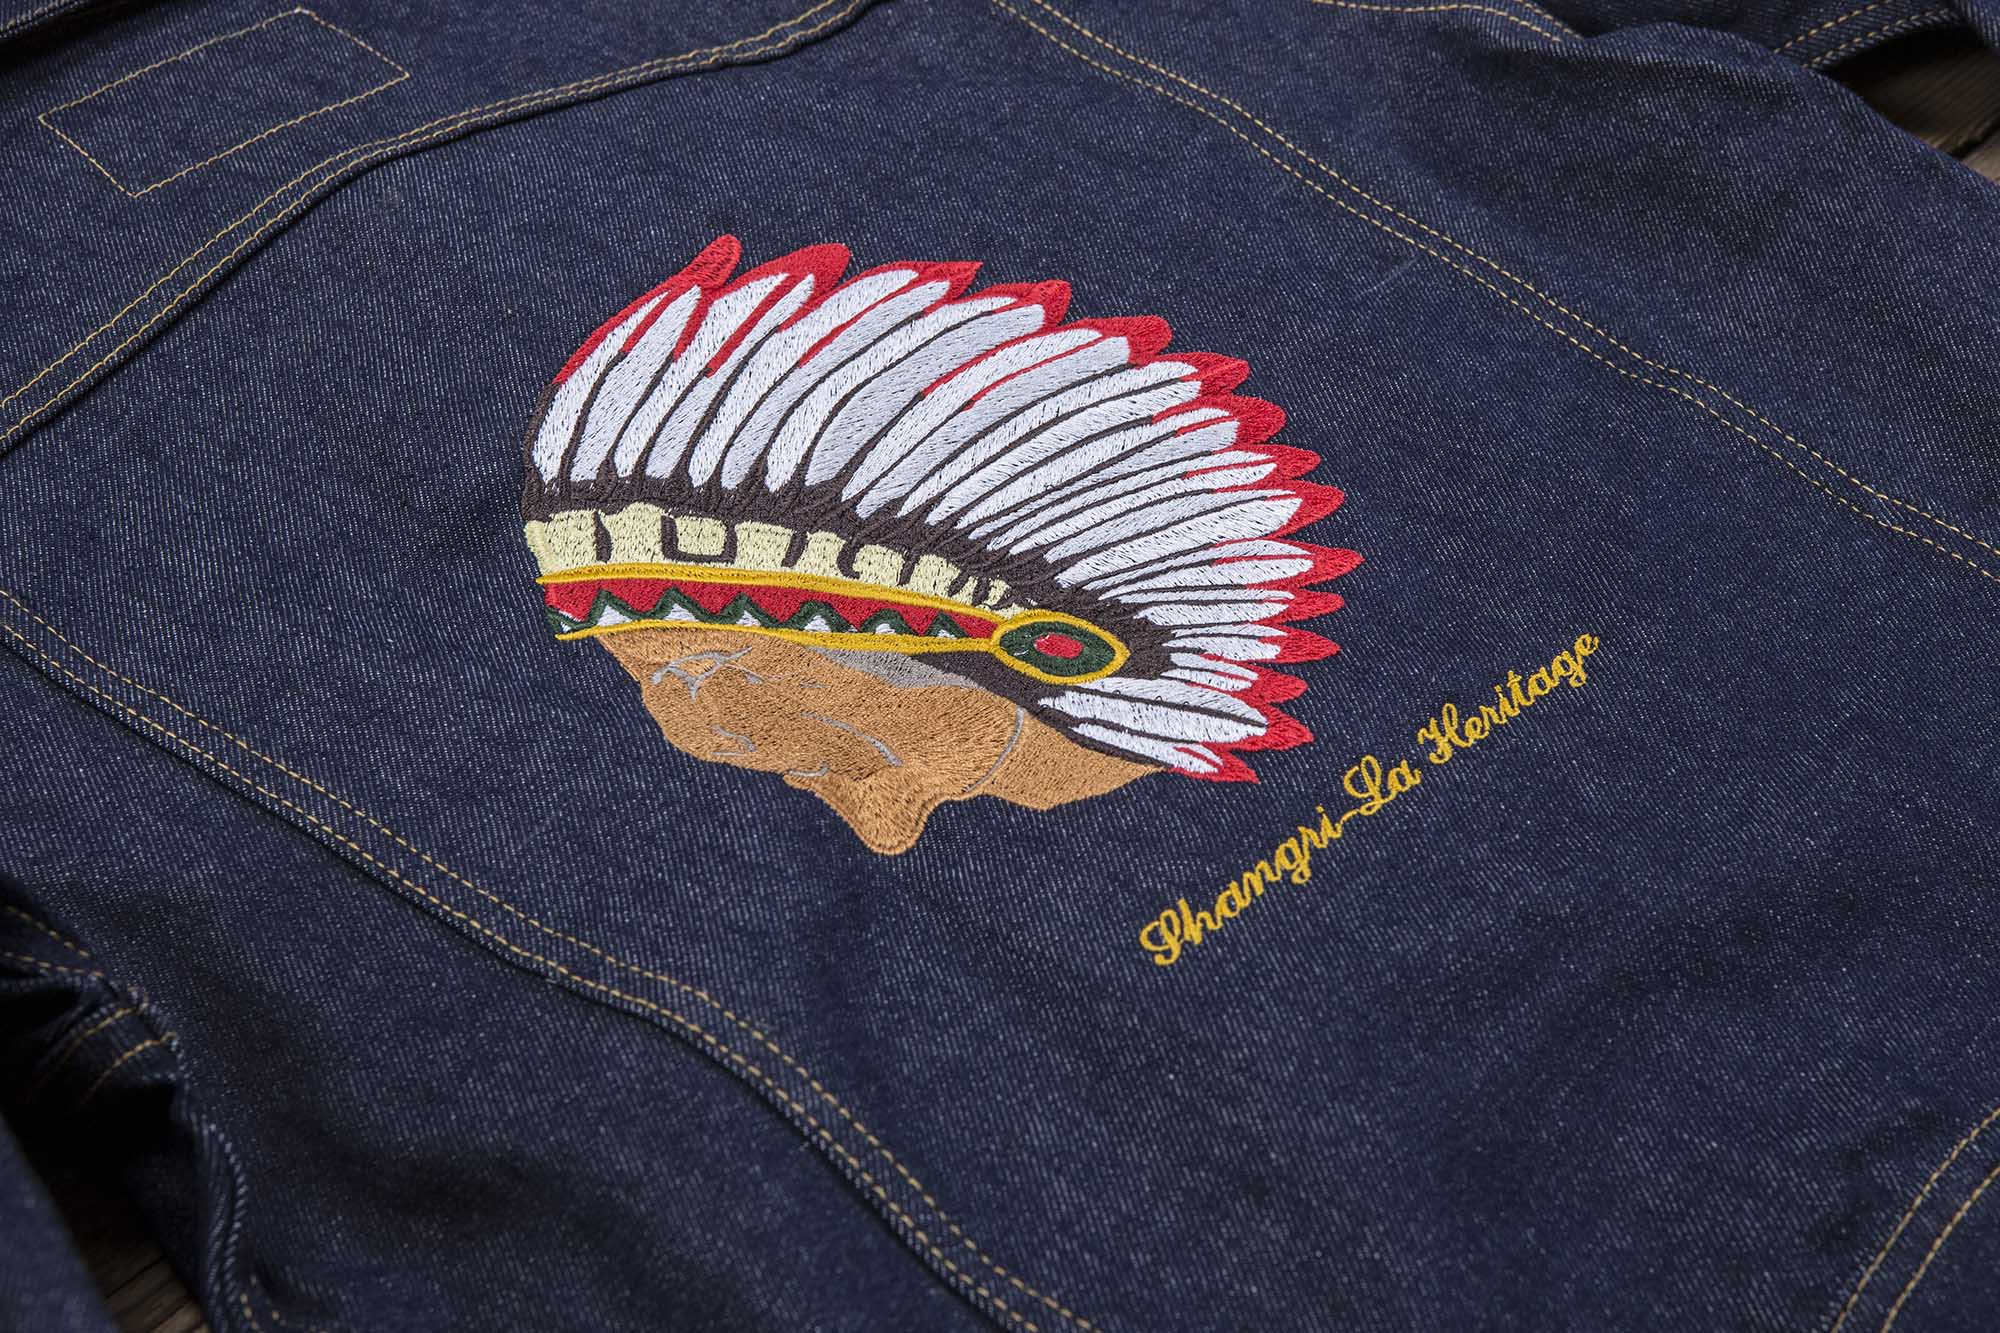 shangri-la-heritage-single-rider-denim-jacket-toro-seduto-still-life-indian